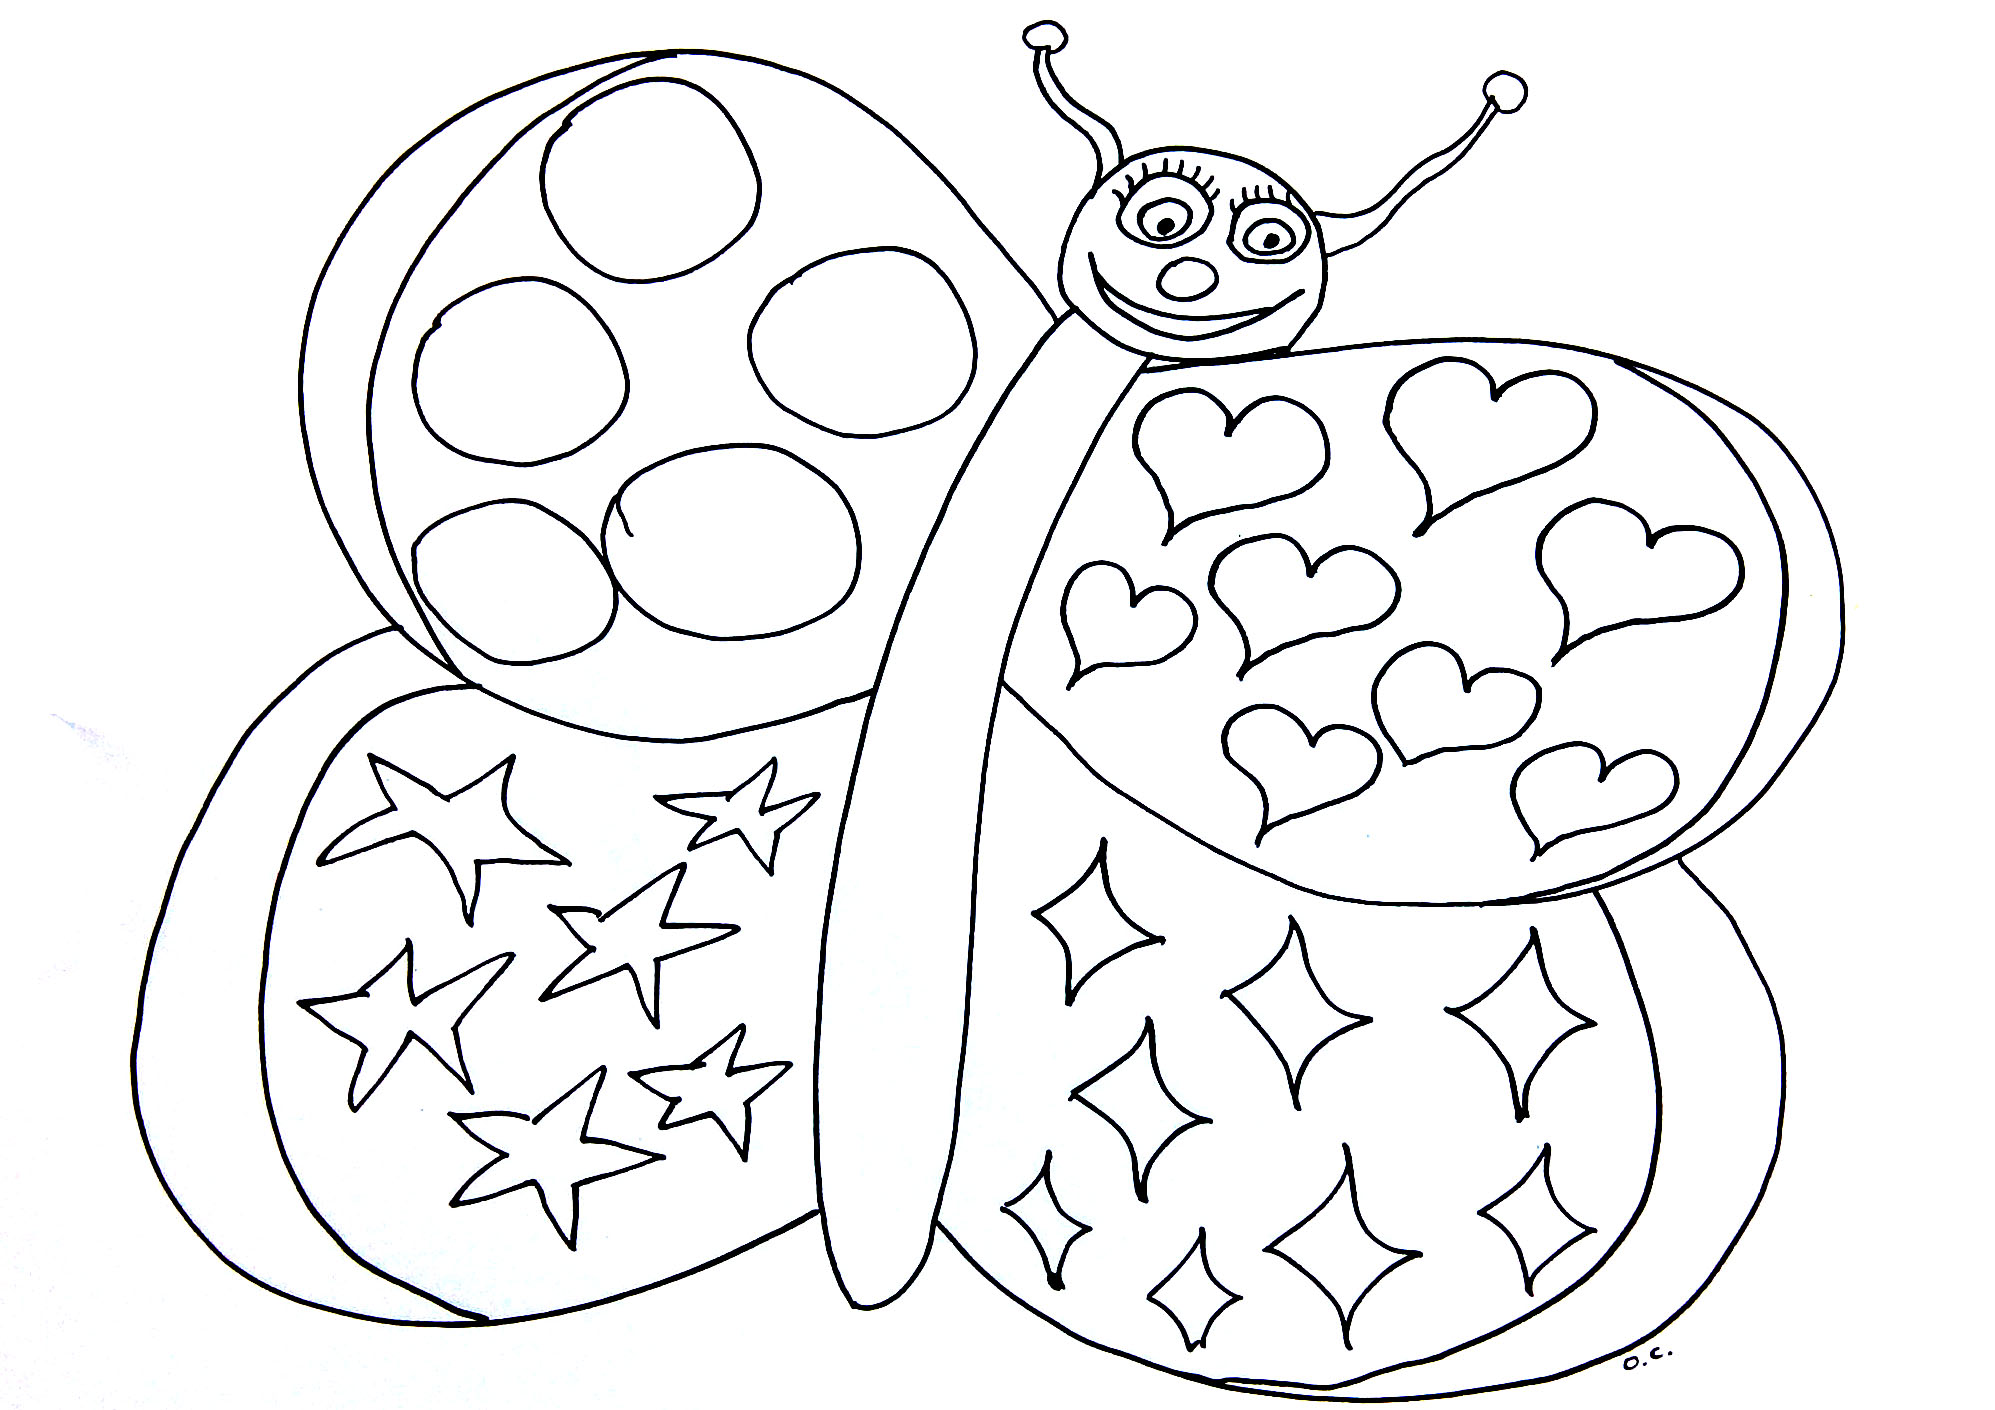 Butterfly with simple patterns and hearts - Insects Coloring pages ...